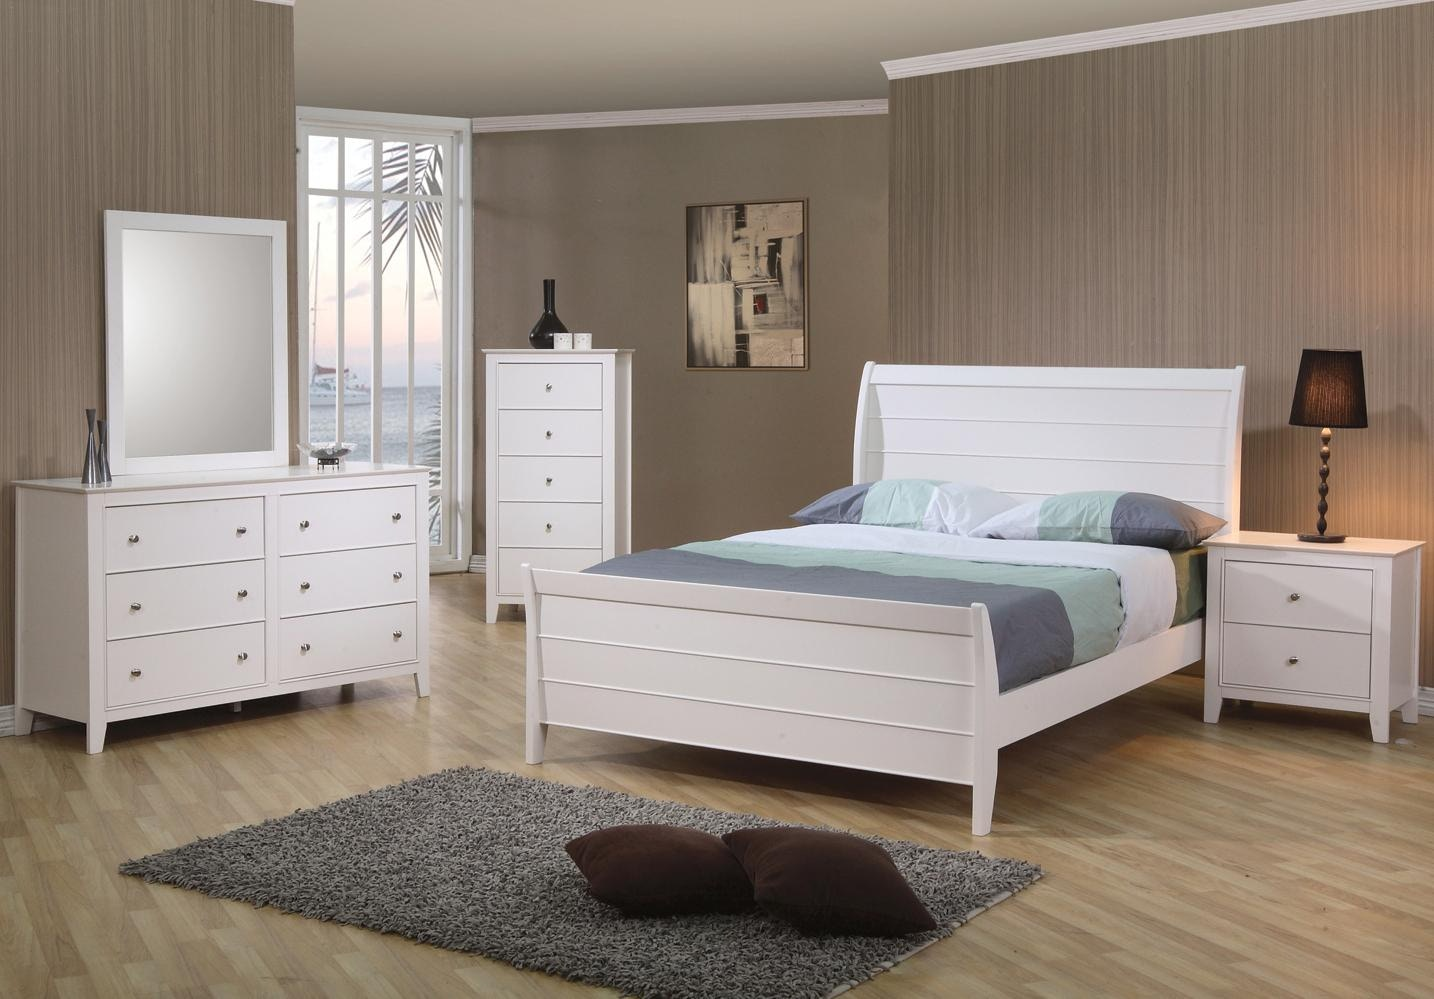 Coaster Bedroom Chest The Furniture House of